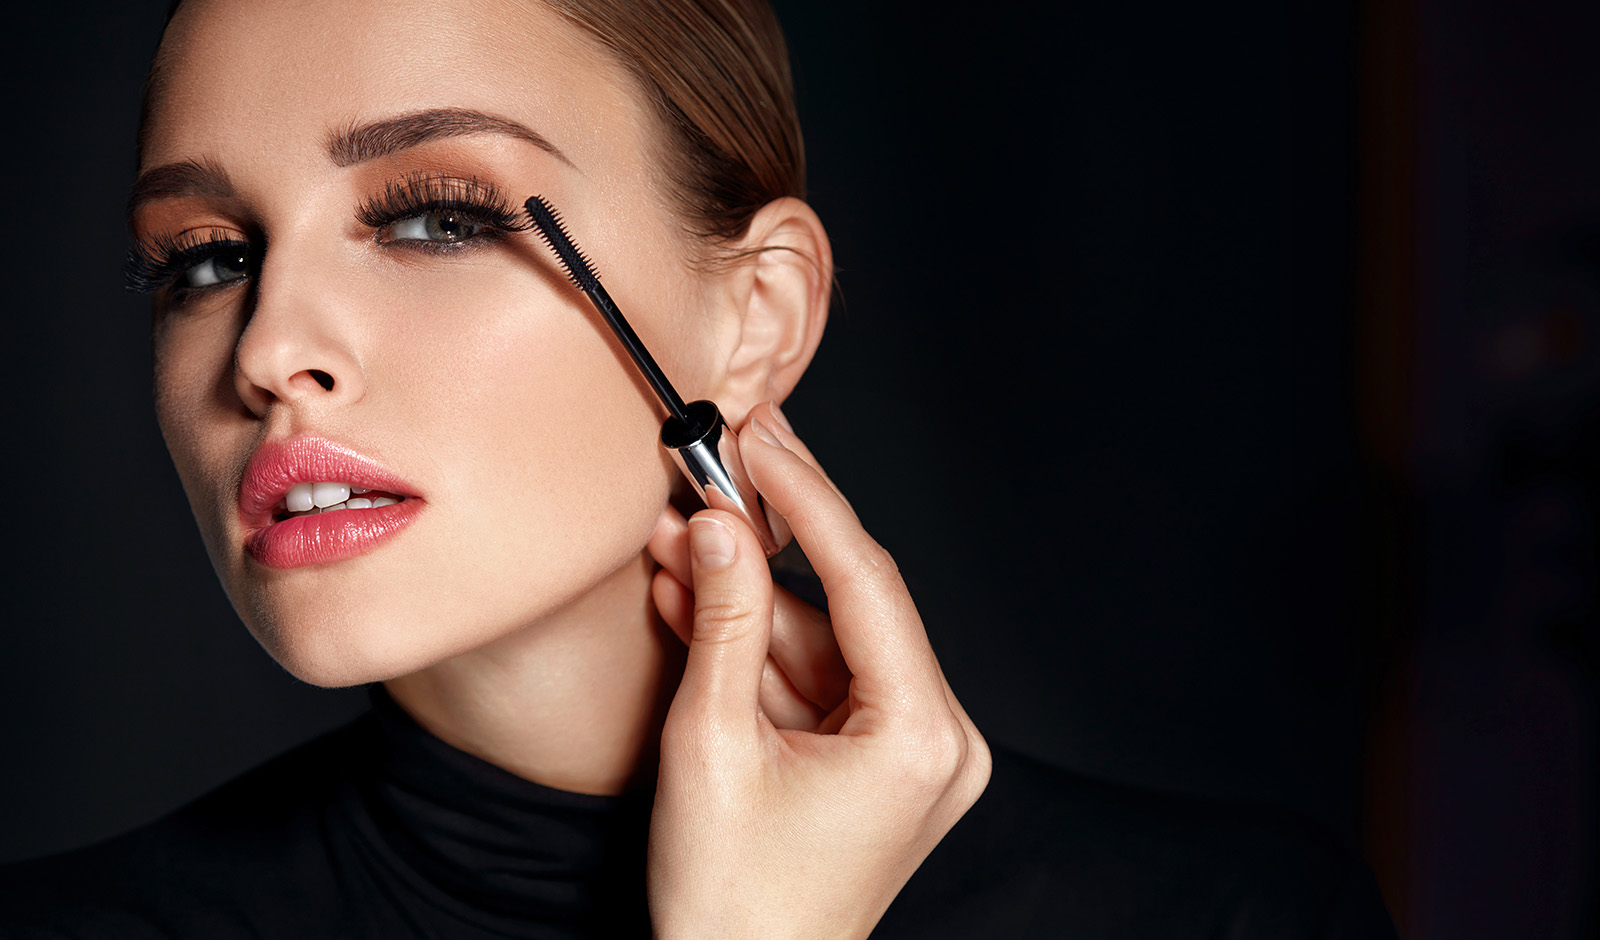 which-mascara-want-is-best-for-your-eye-shape-woman-applying-mascara